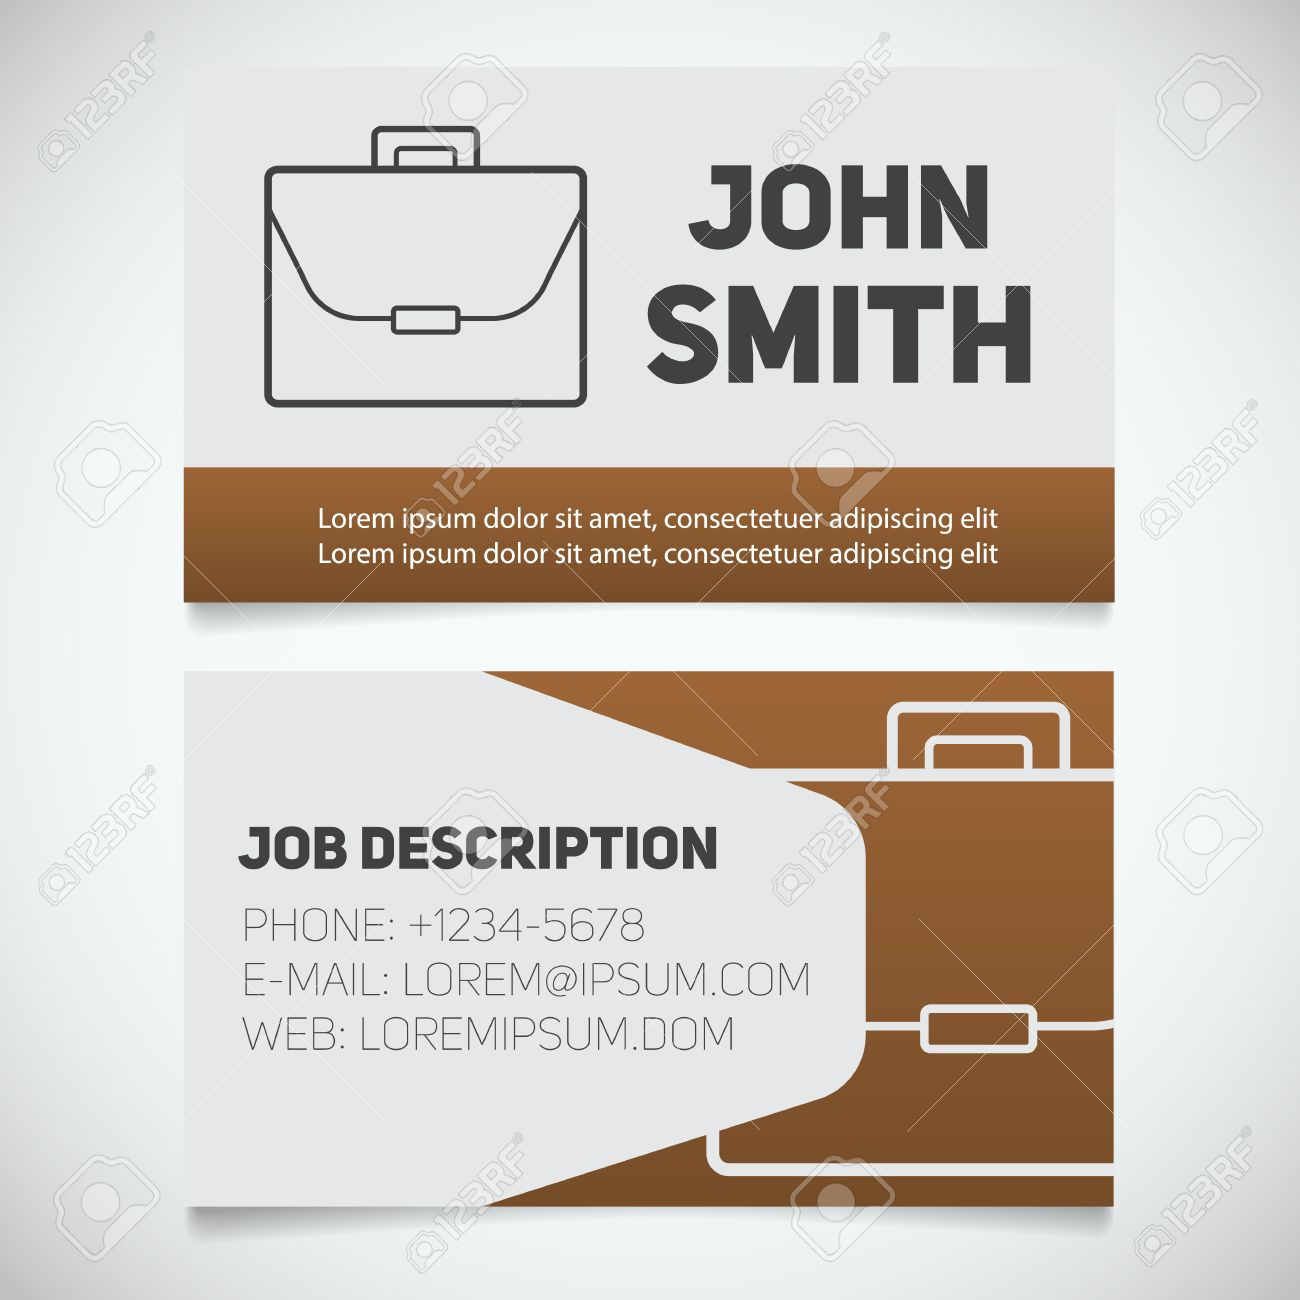 Business card print template with briefcase logo easy edit business card print template with briefcase logo easy edit manager work management magicingreecefo Image collections